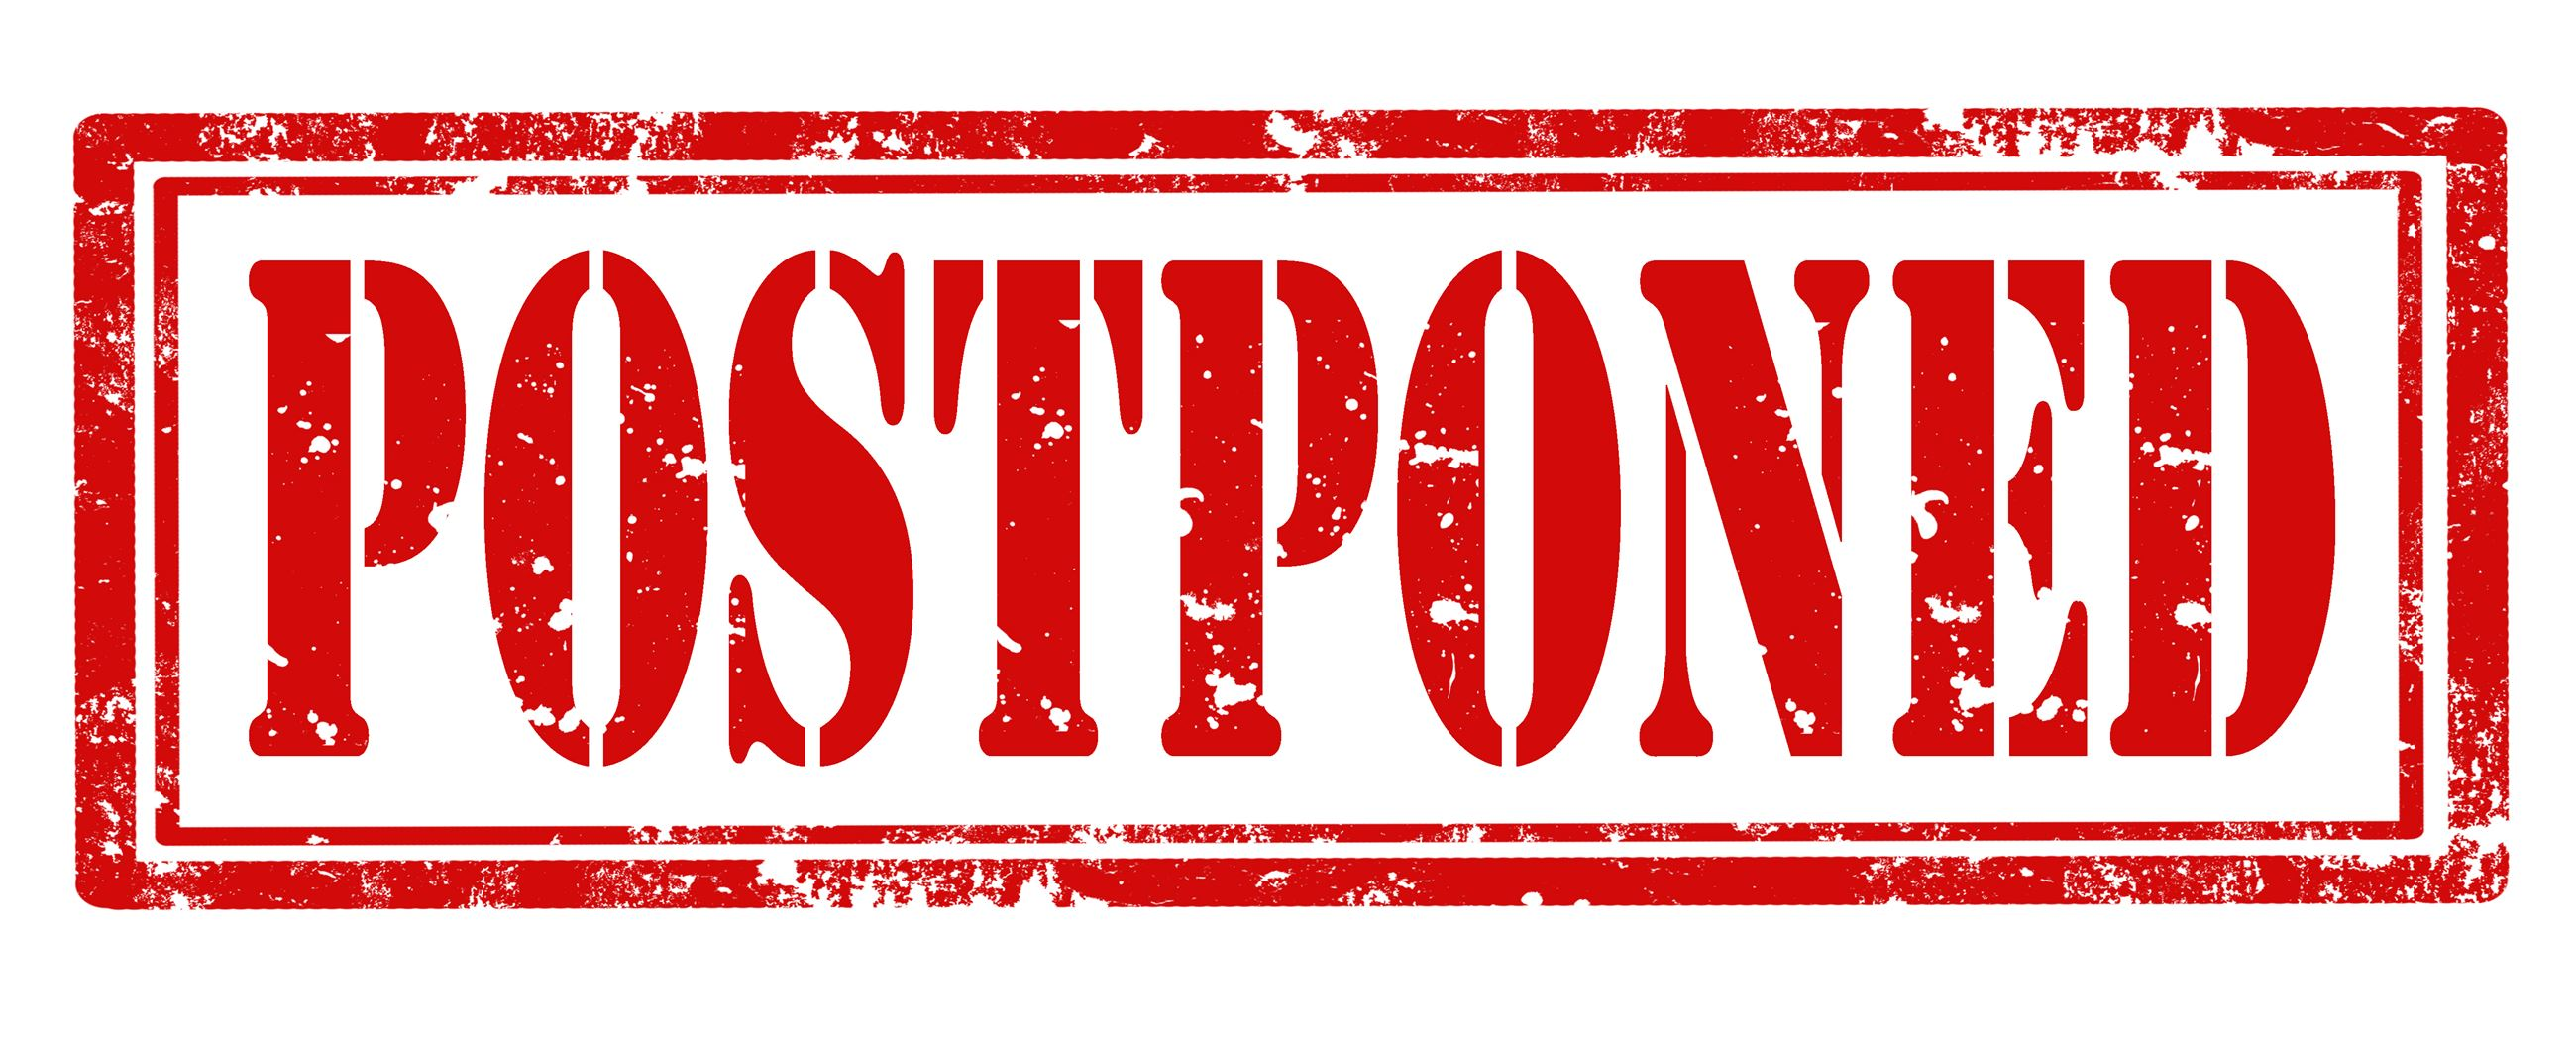 postponed (picture of the word postponed)